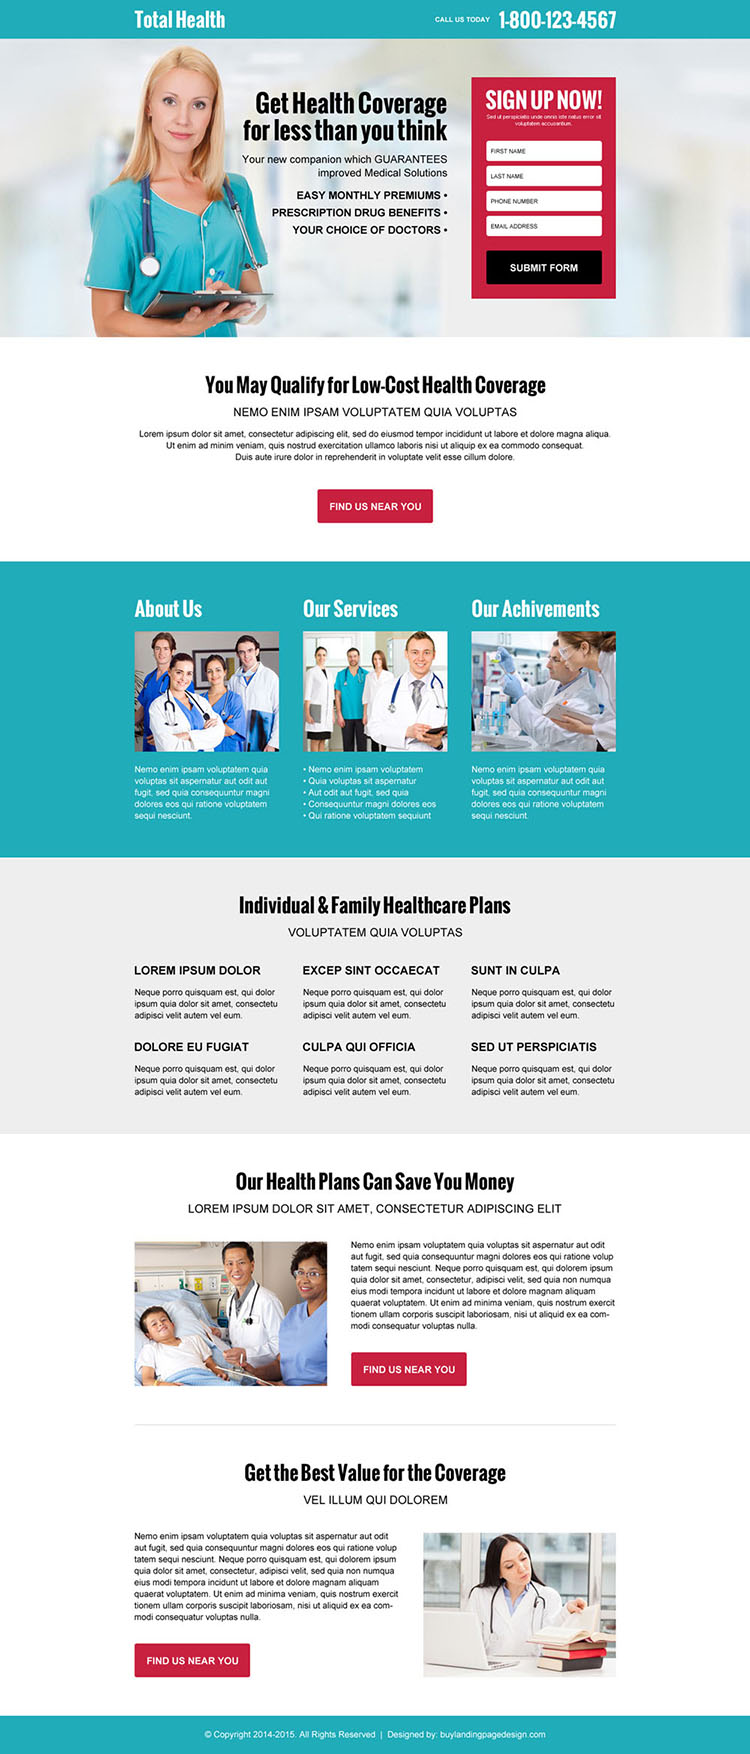 medical-health-service-quote-res-lp-003 | Health Insurance Landing Page Design preview.